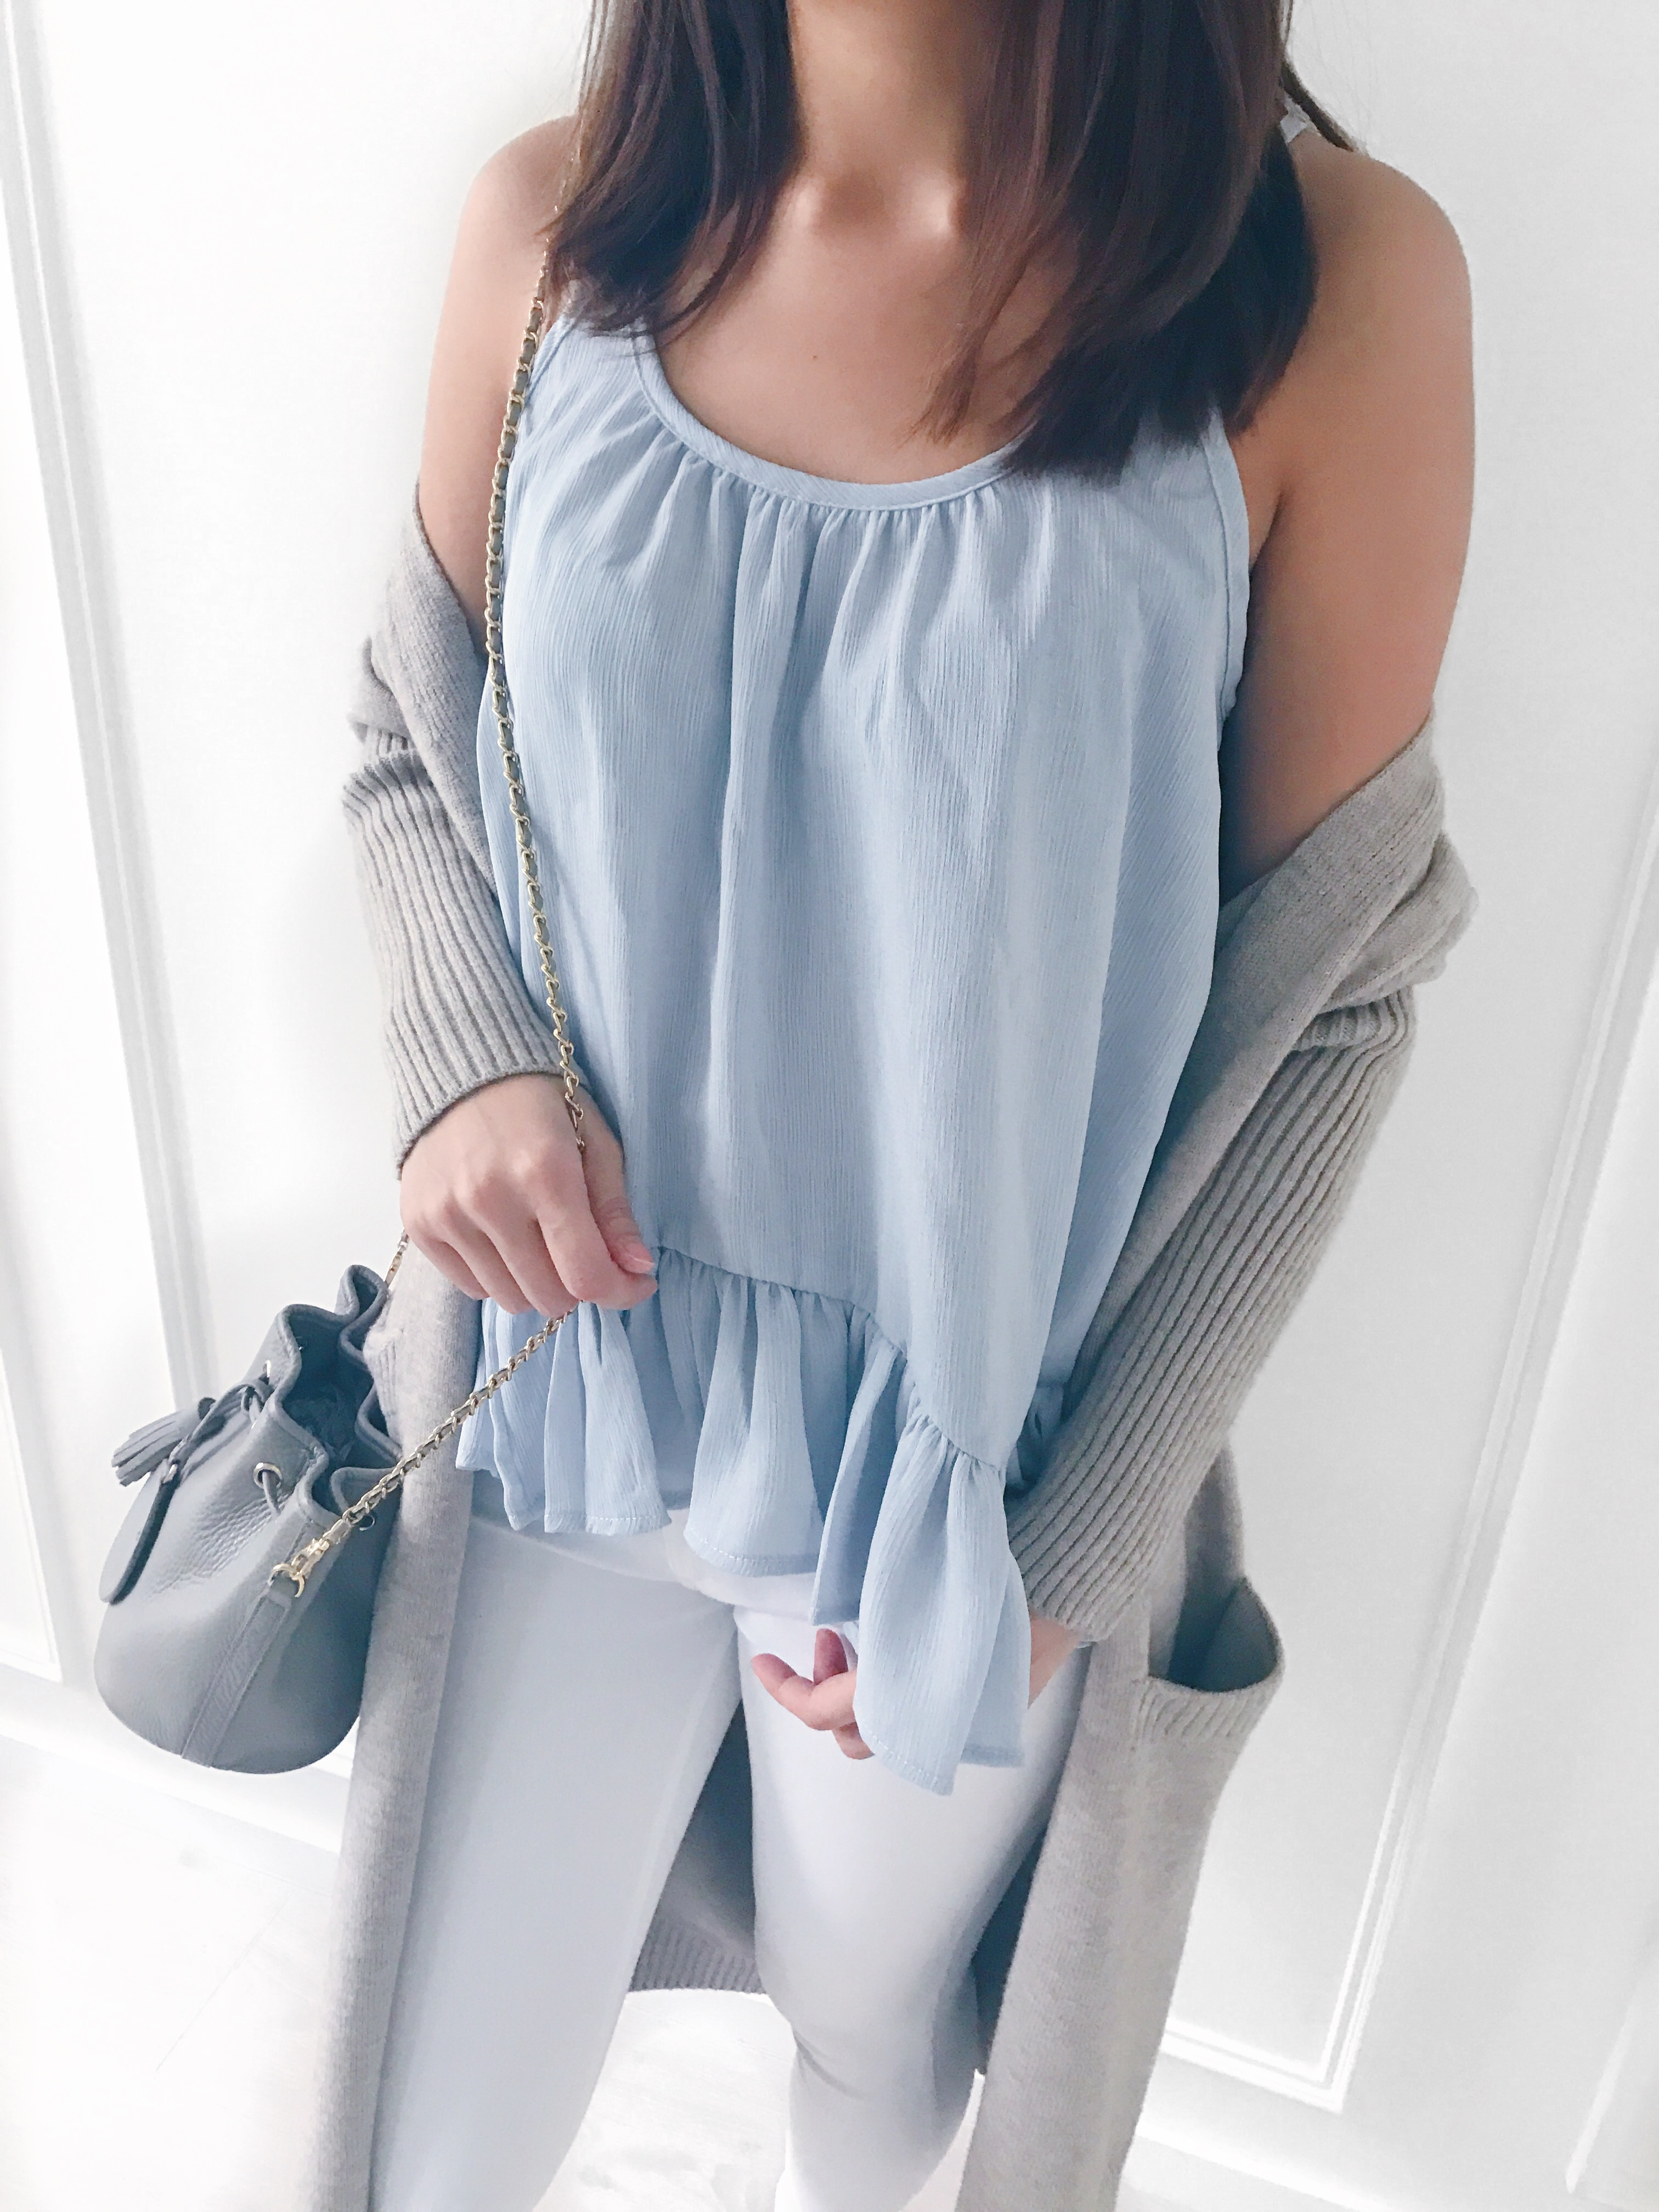 3 Casual Outfits With Items Under $30!